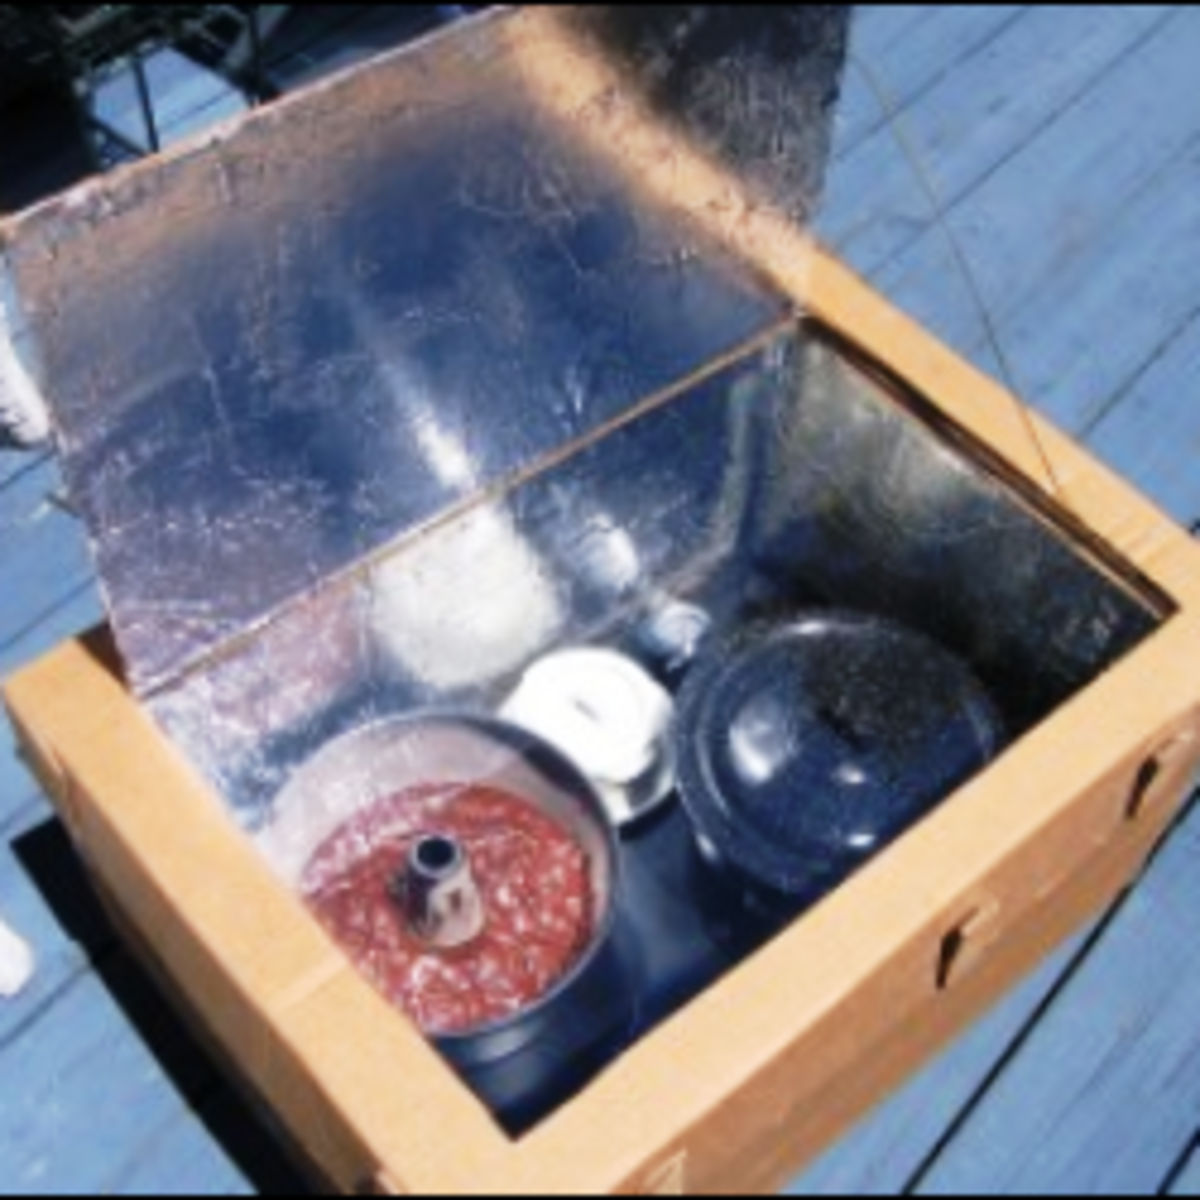 How to Make and Use a Solar Oven | Box Cooker Plans and Recipes